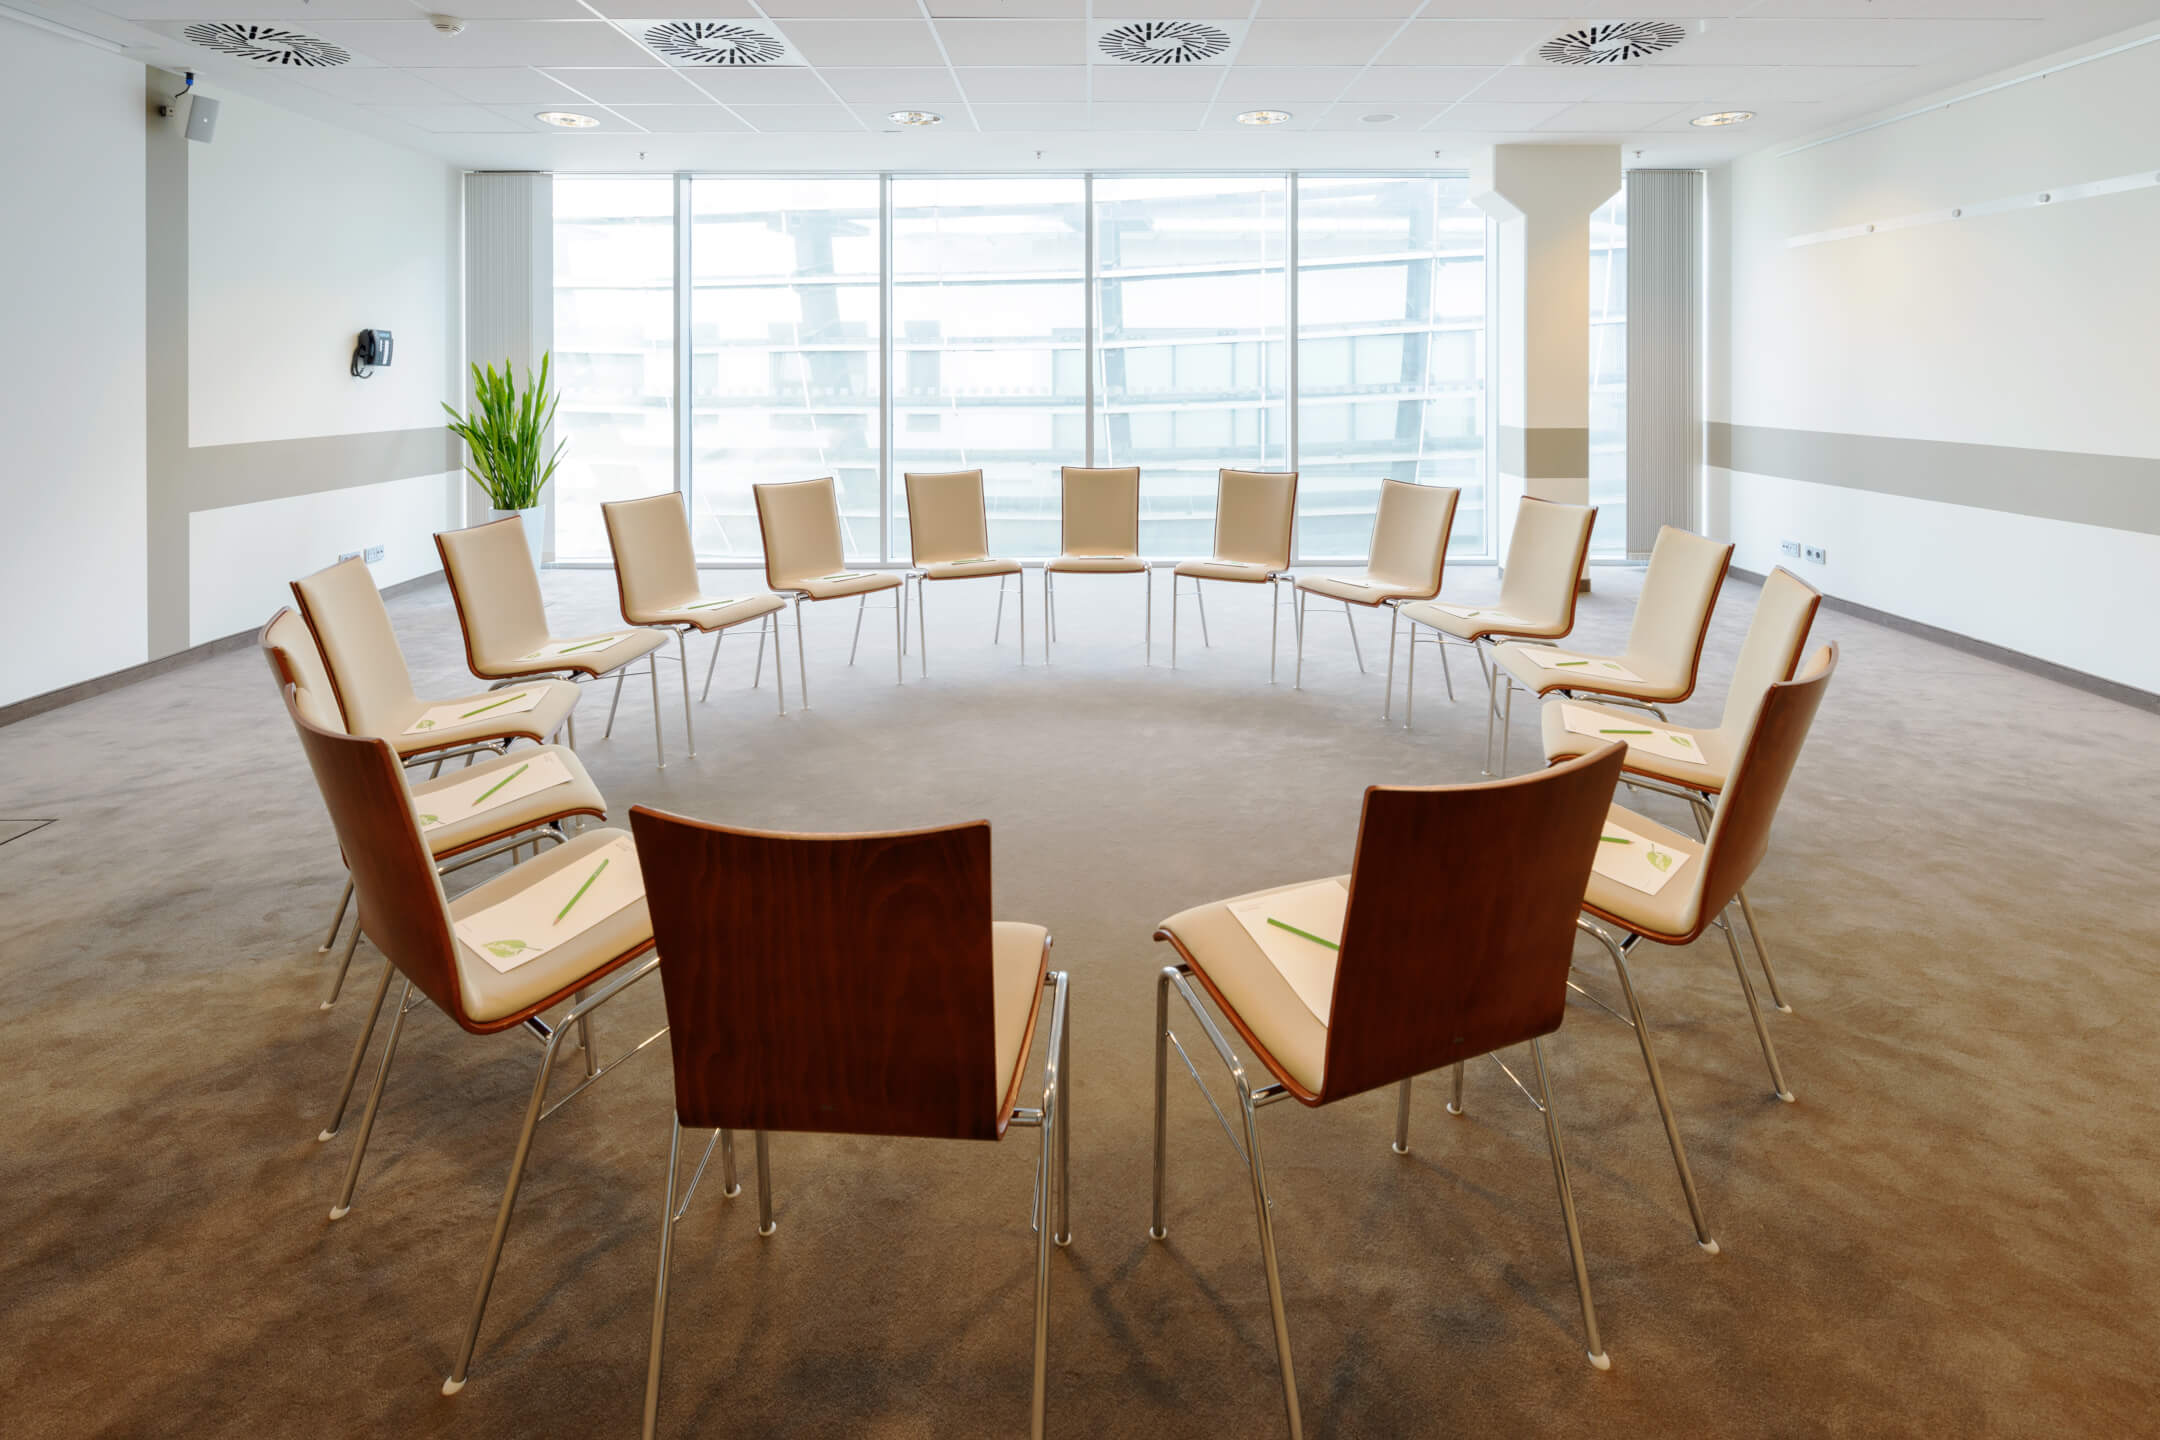 Chair circle in function room conference room 6